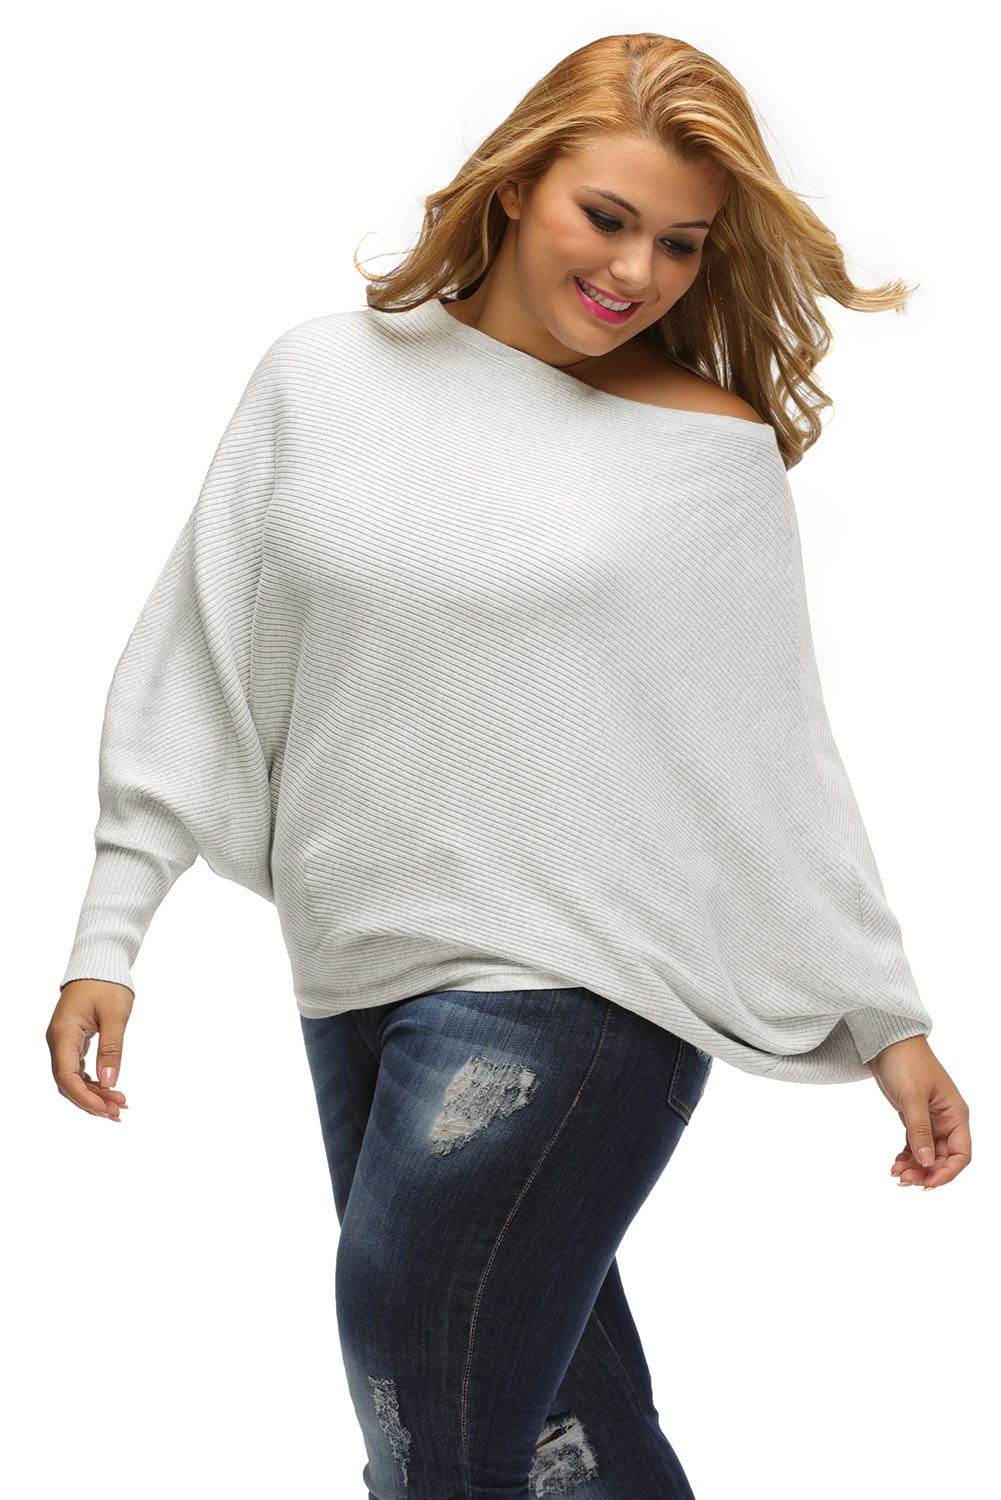 Off shoulder bat long sleeves loose fit sweater womens fall winter ... 1f59a6622